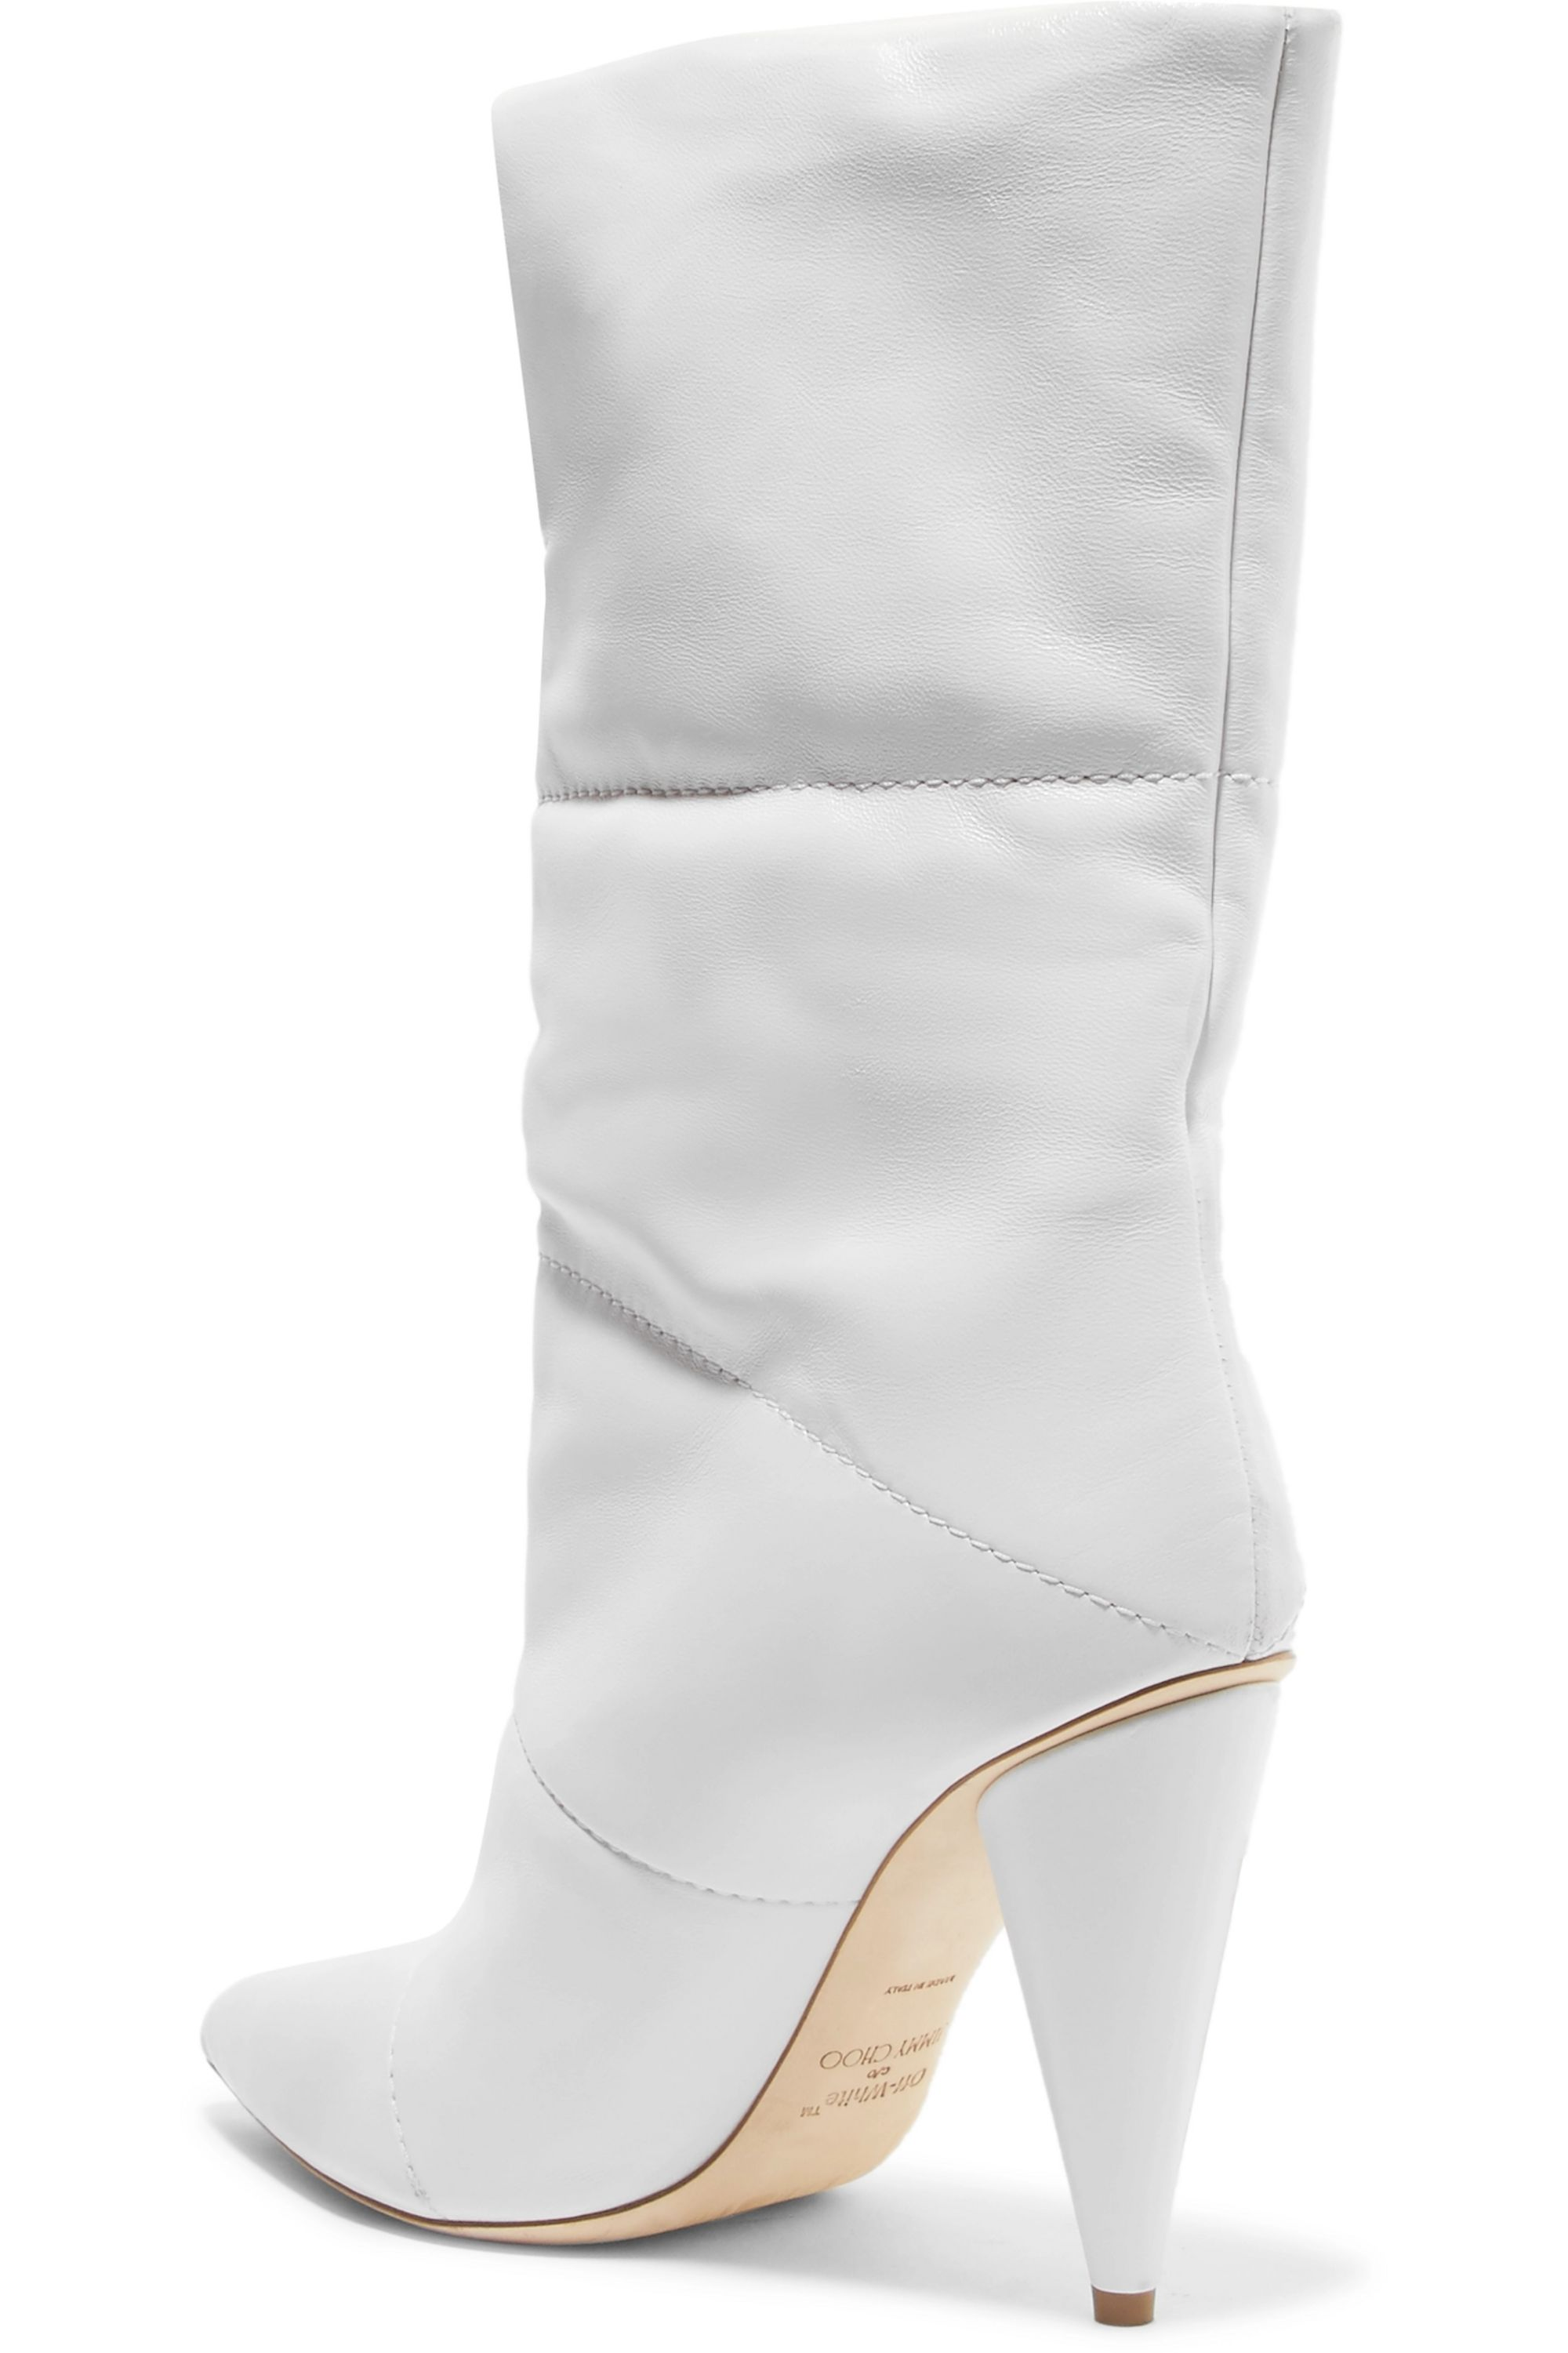 Off-White C/O Jimmy Choo Sara 100 quilted leather boots